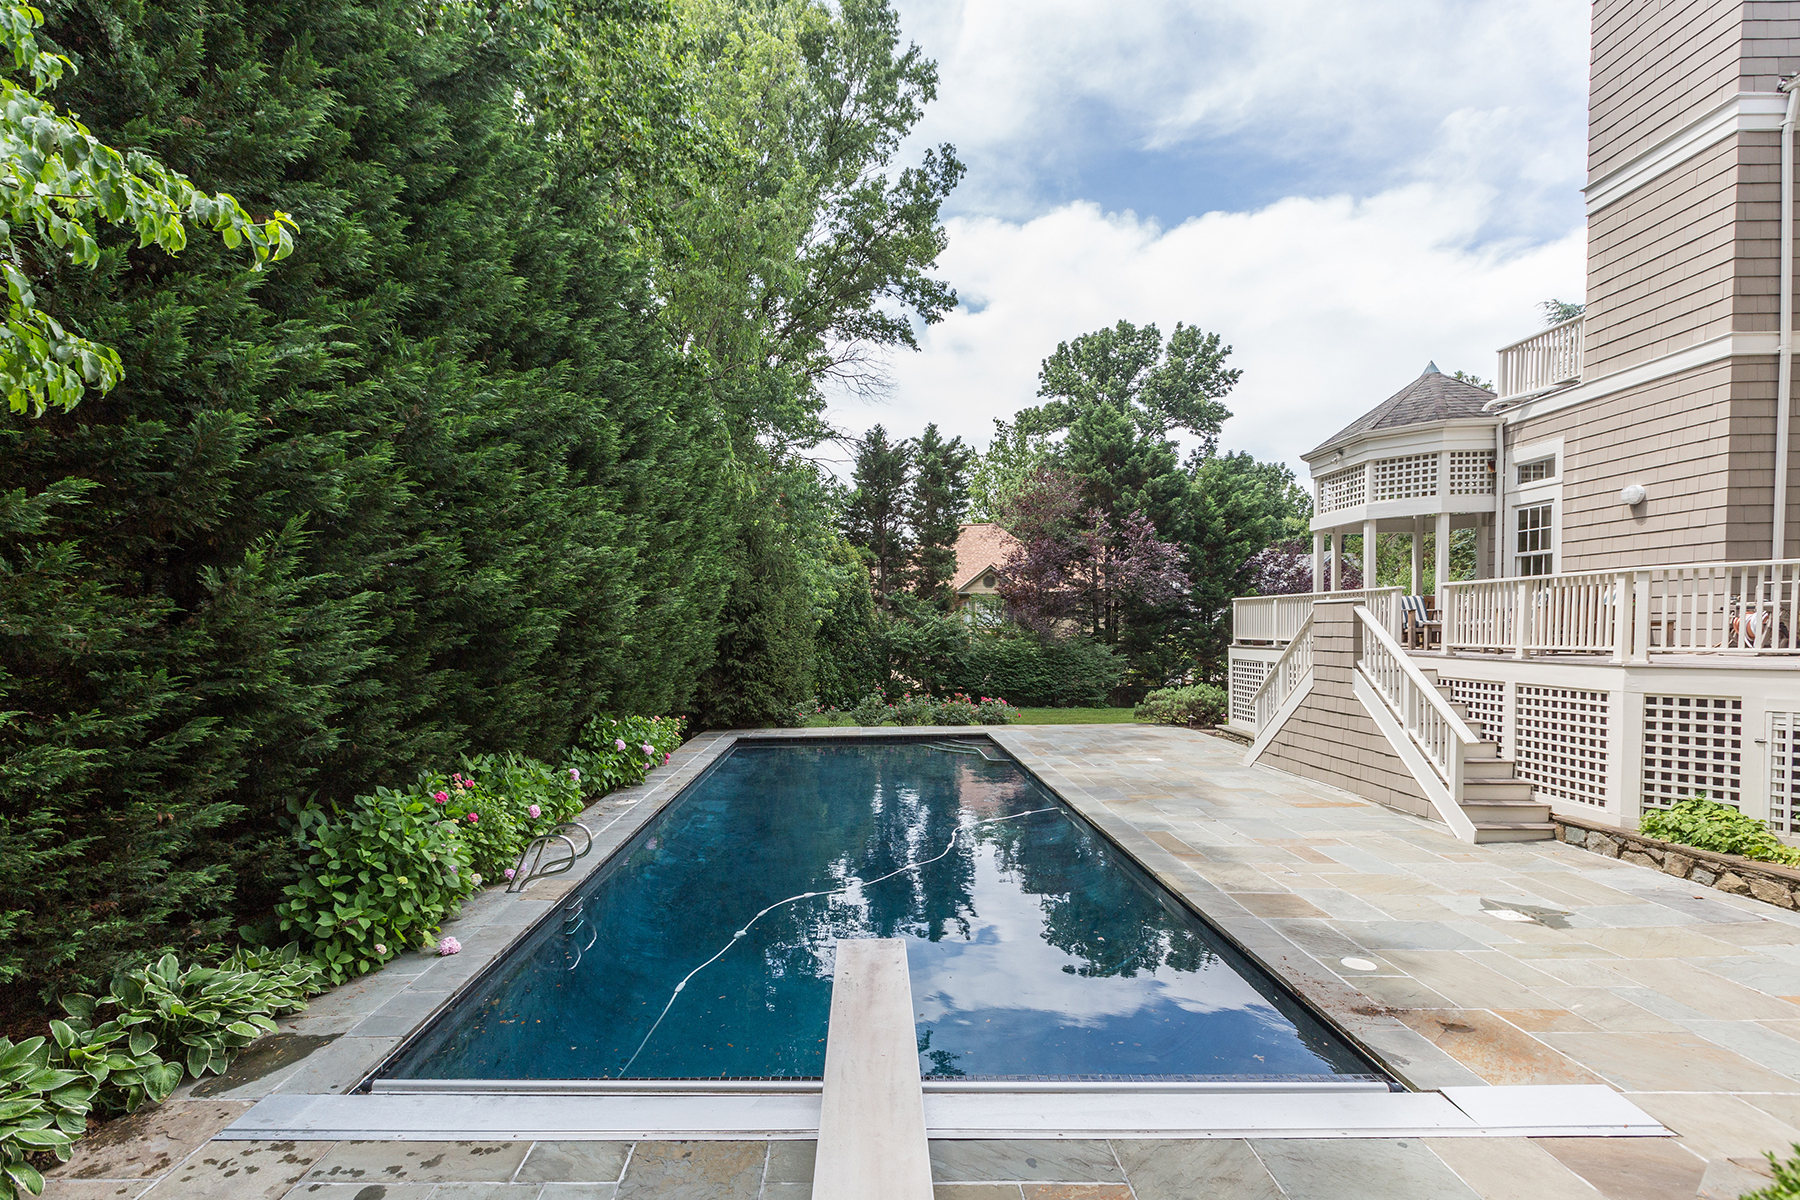 Additional photo for property listing at 7207 Delfield Street, Chevy Chase  Chevy Chase, Μεριλαντ 20815 Ηνωμενεσ Πολιτειεσ